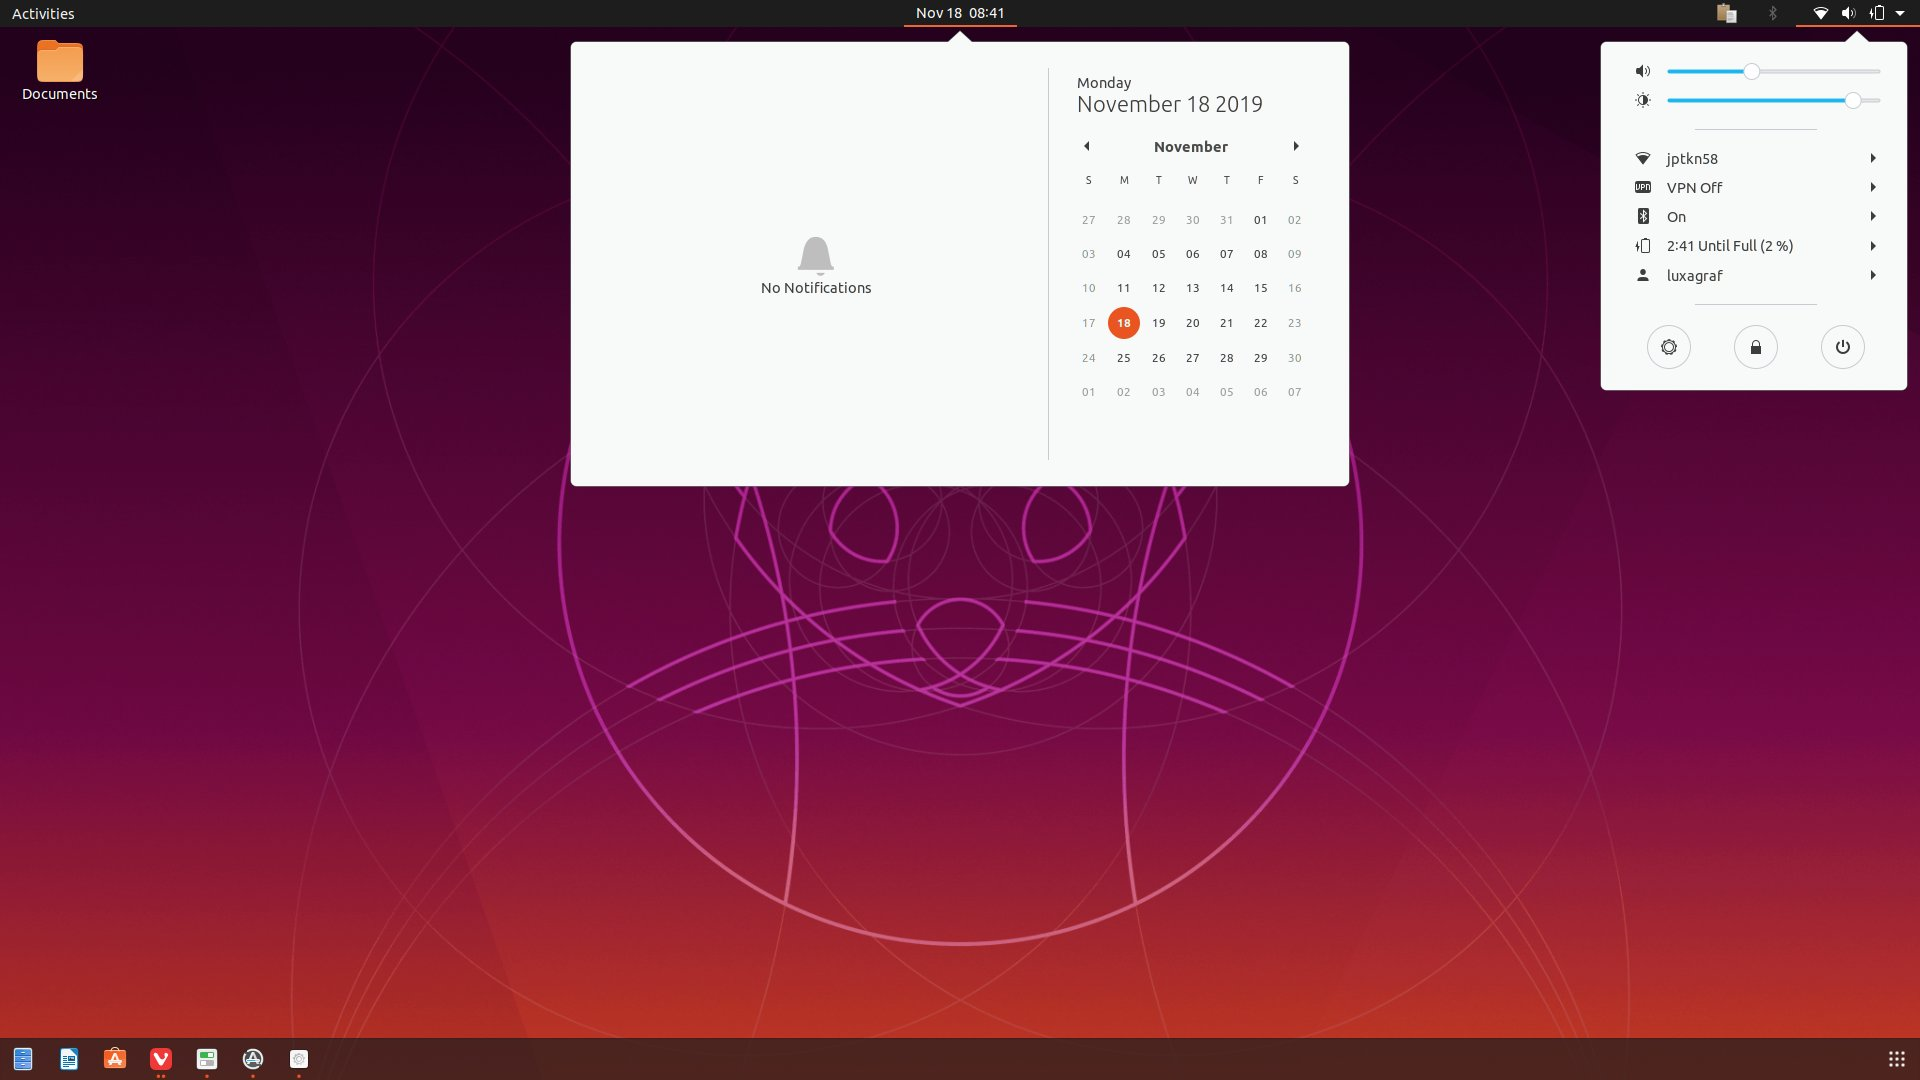 The new lighter look for Ubuntu's Yaro theme in 19.10 (this is a composite screenshot).